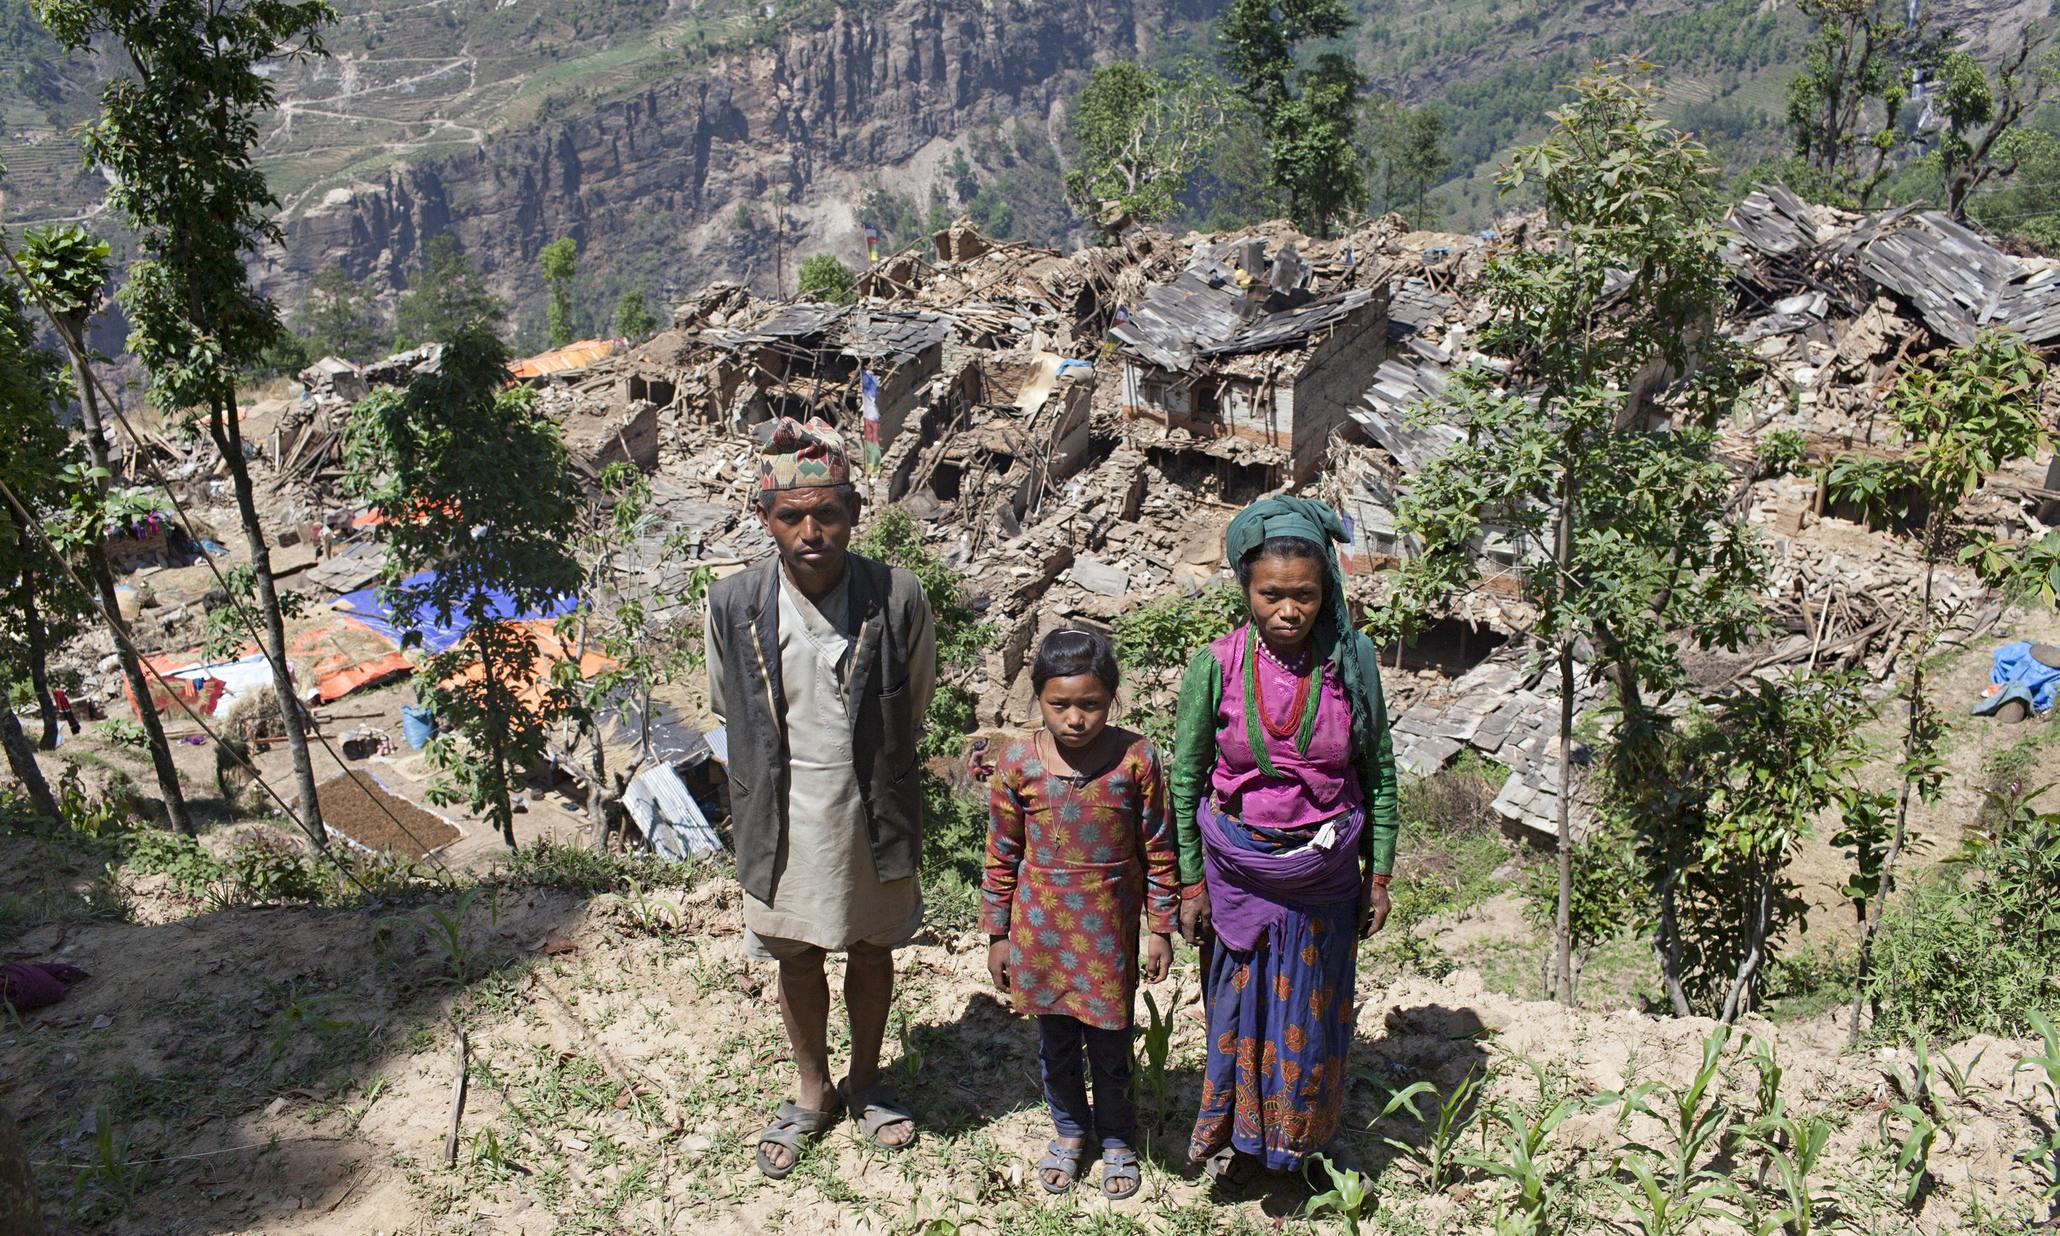 Nepal earthquake: why I had to return to a devastated country in crisis